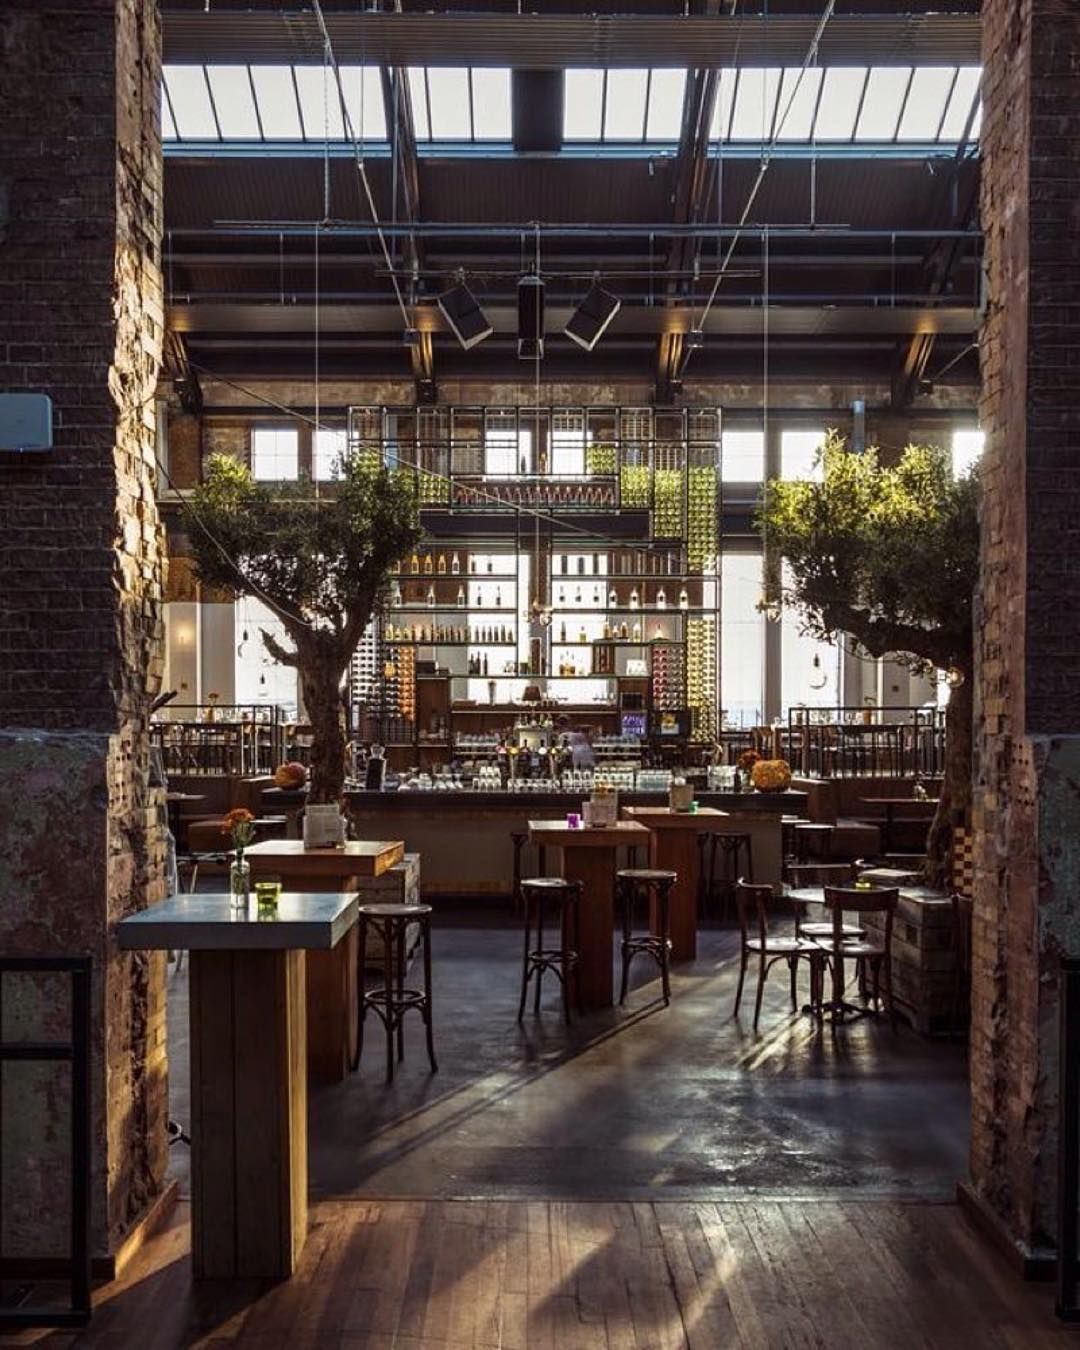 Centuries Of Rich Culture Expressed In Interior Design The Best Chinese Interiors To Boost Your Inspiration Great Deco Cafe Design Restaurant Restaurant Decor